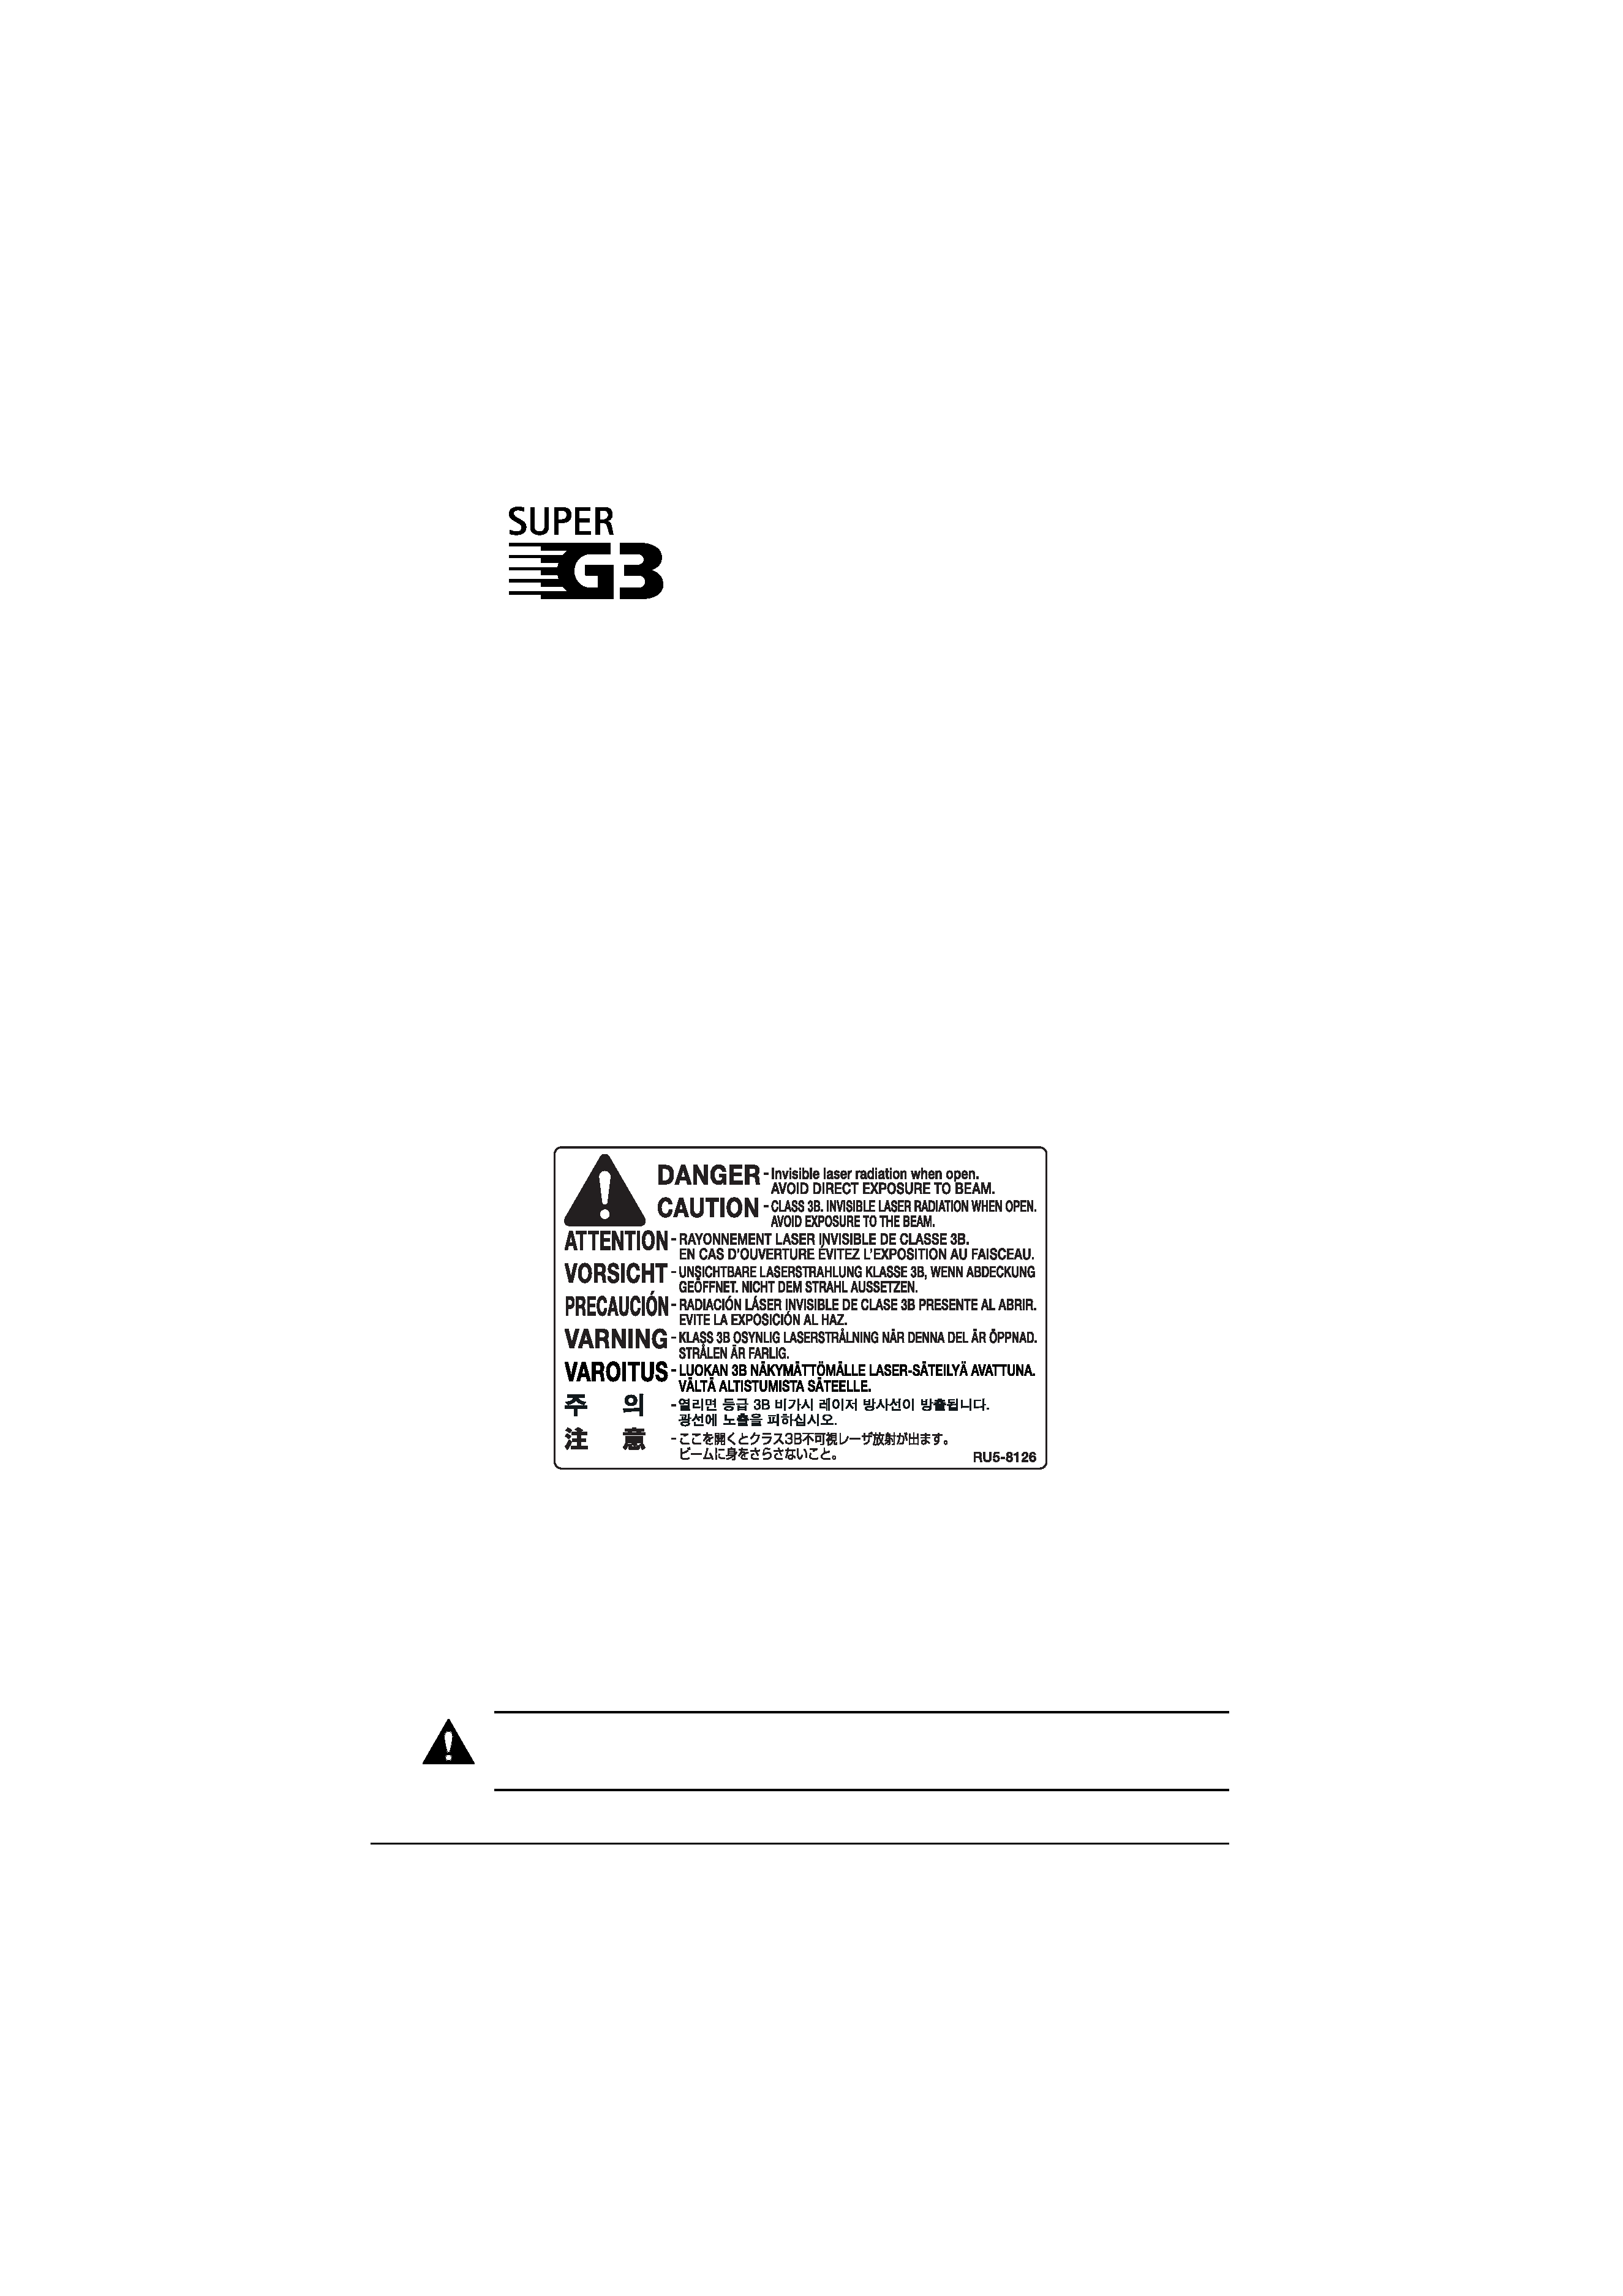 Canon H12250 Fax Machine User Manual - Drivers From Pine River